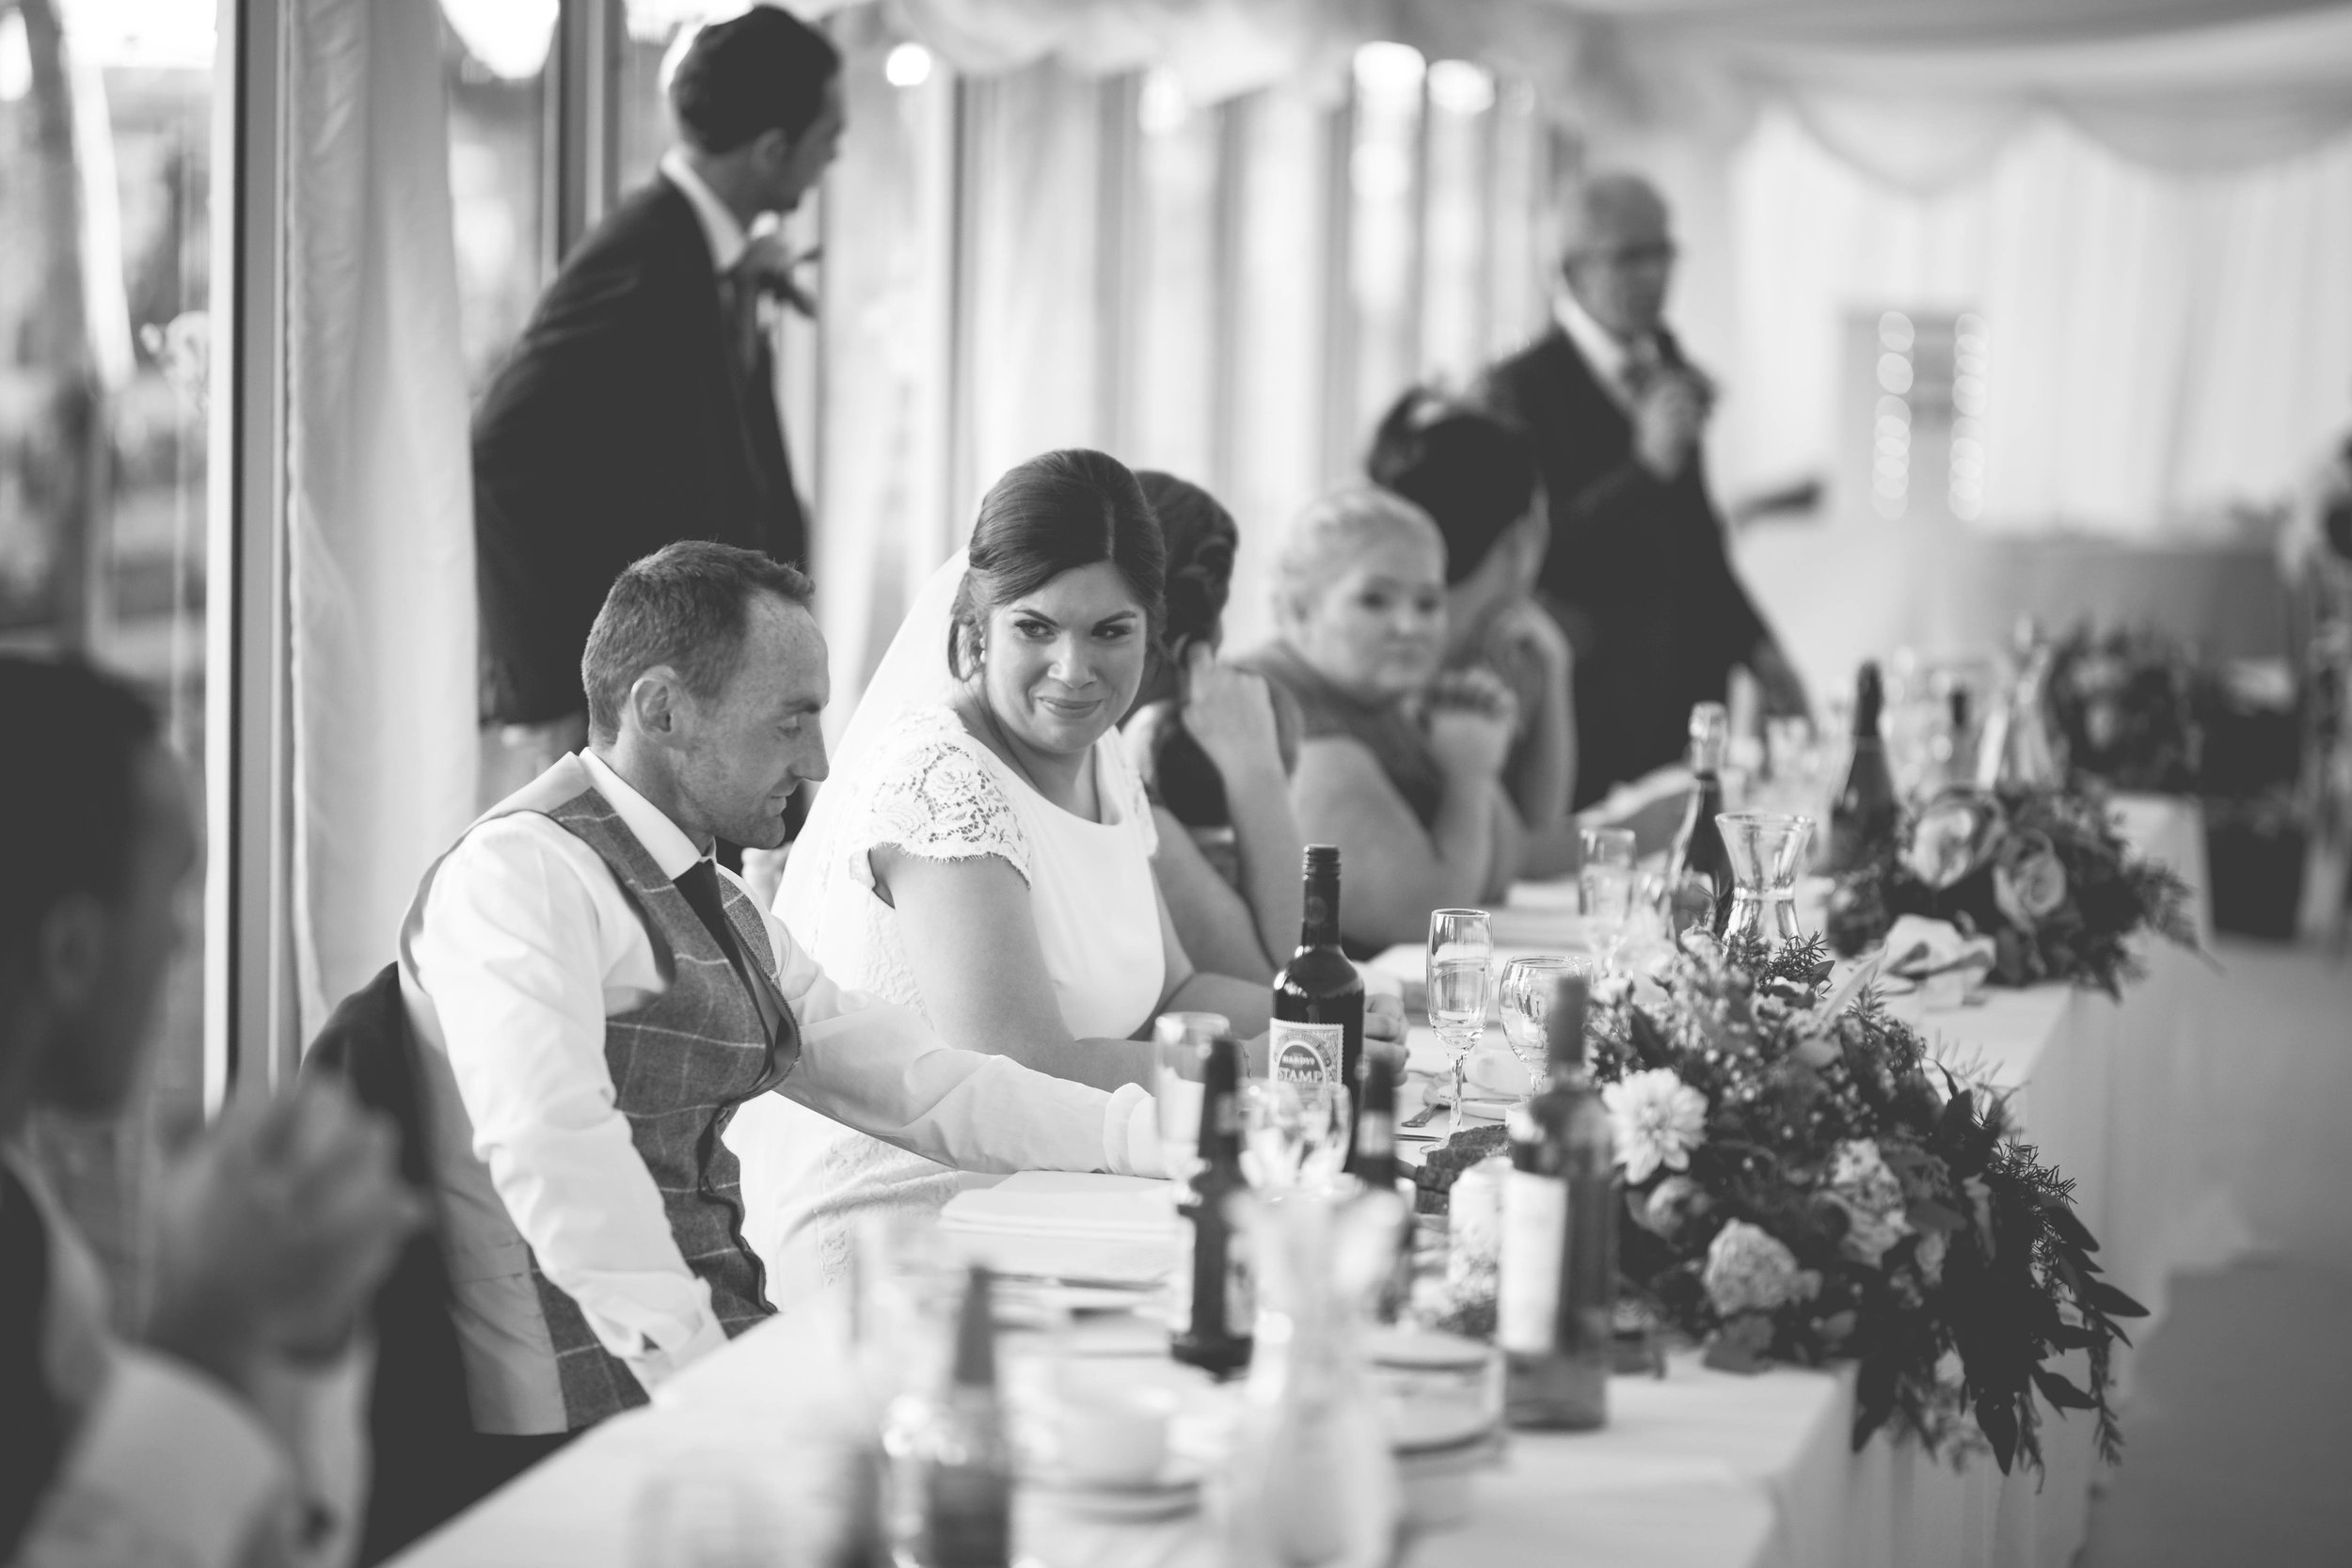 Northern Ireland Wedding Photographer | Brian McEwan Photography | Affordable Wedding Photography Throughout Antrim Down Armagh Tyrone Londonderry Derry Down Fermanagh -70.jpg